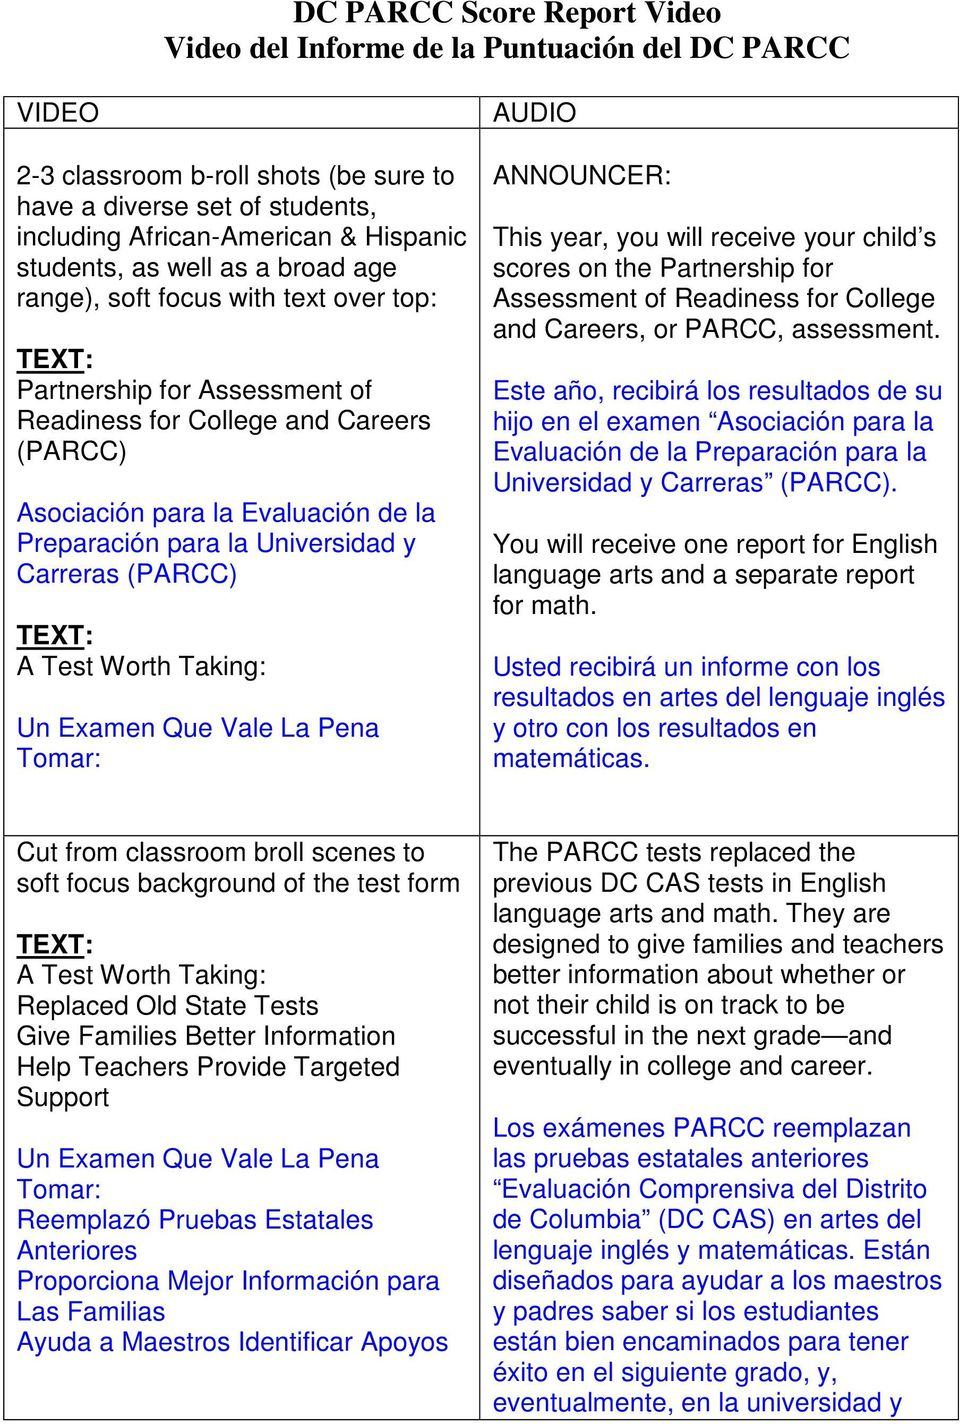 Universidad y Carreras (PARCC) A Test Worth Taking: Un Examen Que Vale La Pena Tomar: AUDIO ANNOUNCER: This year, you will receive your child s scores on the Partnership for Assessment of Readiness